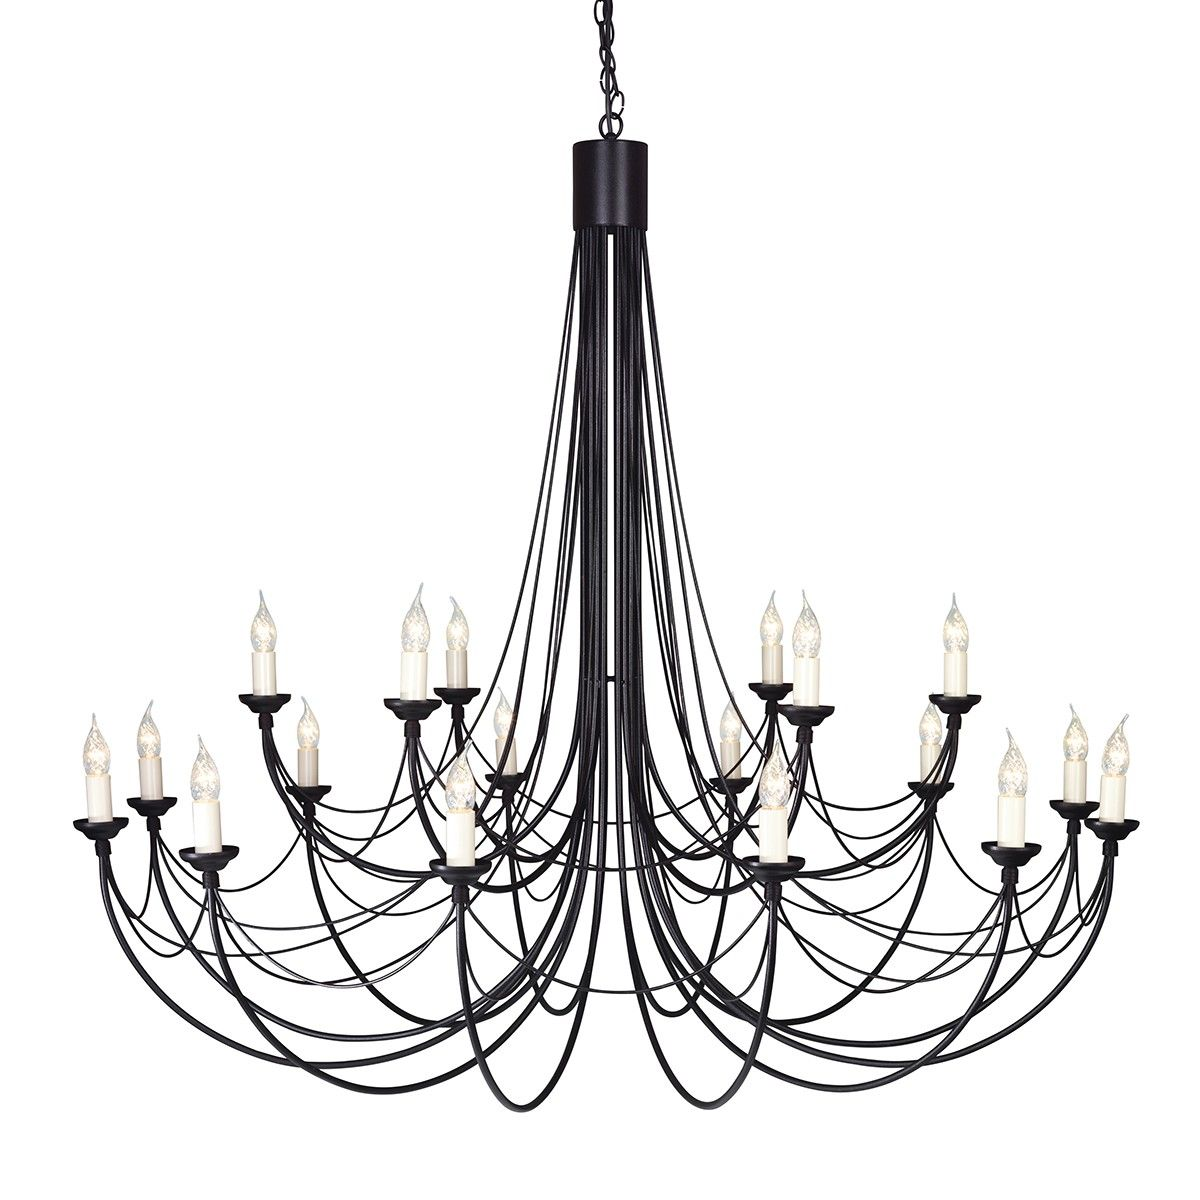 Elstead lighting carisbrooke 18 light ceiling chandelier fitting elstead lighting carisbrooke 18 light ceiling chandelier fitting black cb18 black arubaitofo Image collections